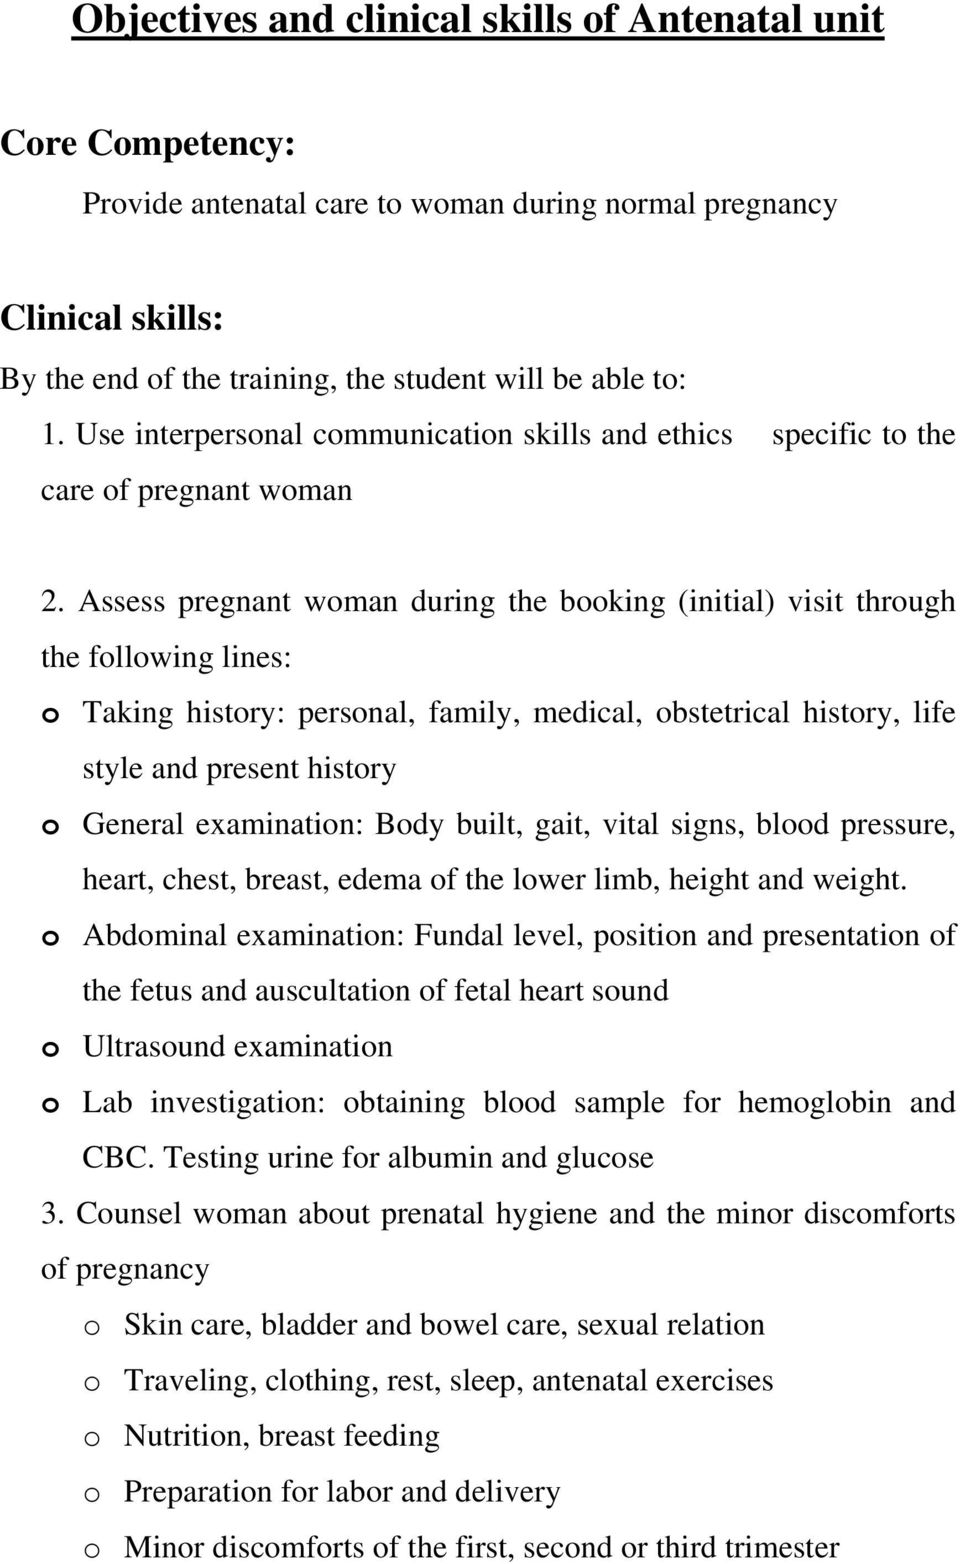 examination: Body built, gait, vital signs, blood pressure, heart, chest, breast, edema of the lower limb, height and weight.